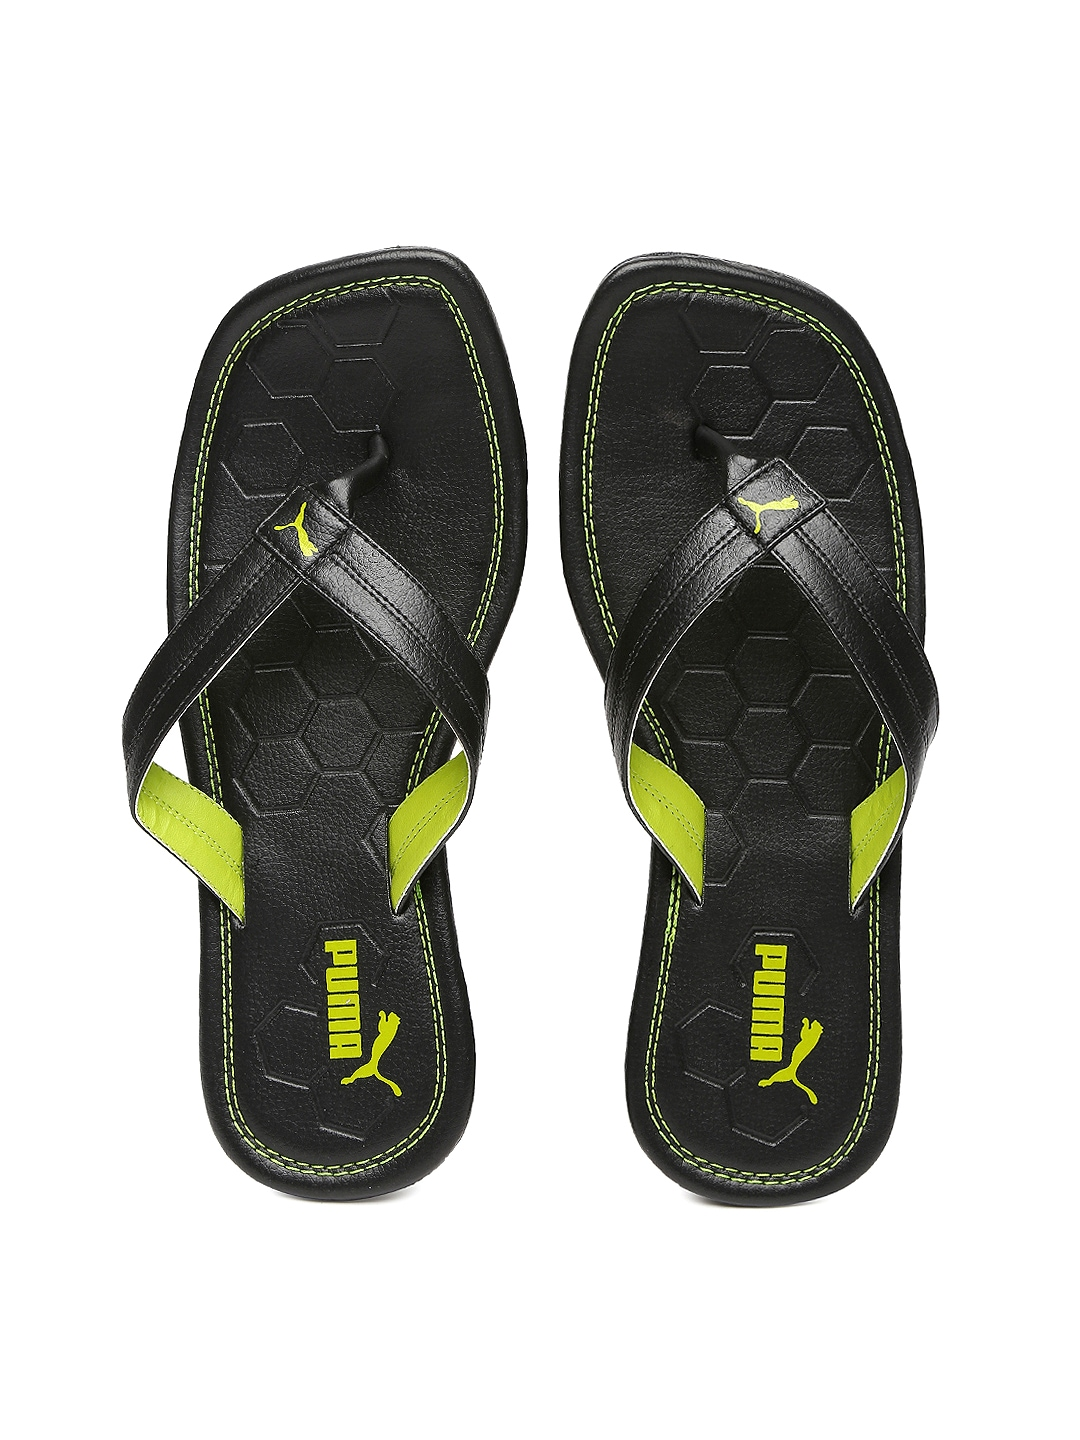 puma slippers for mens online shopping